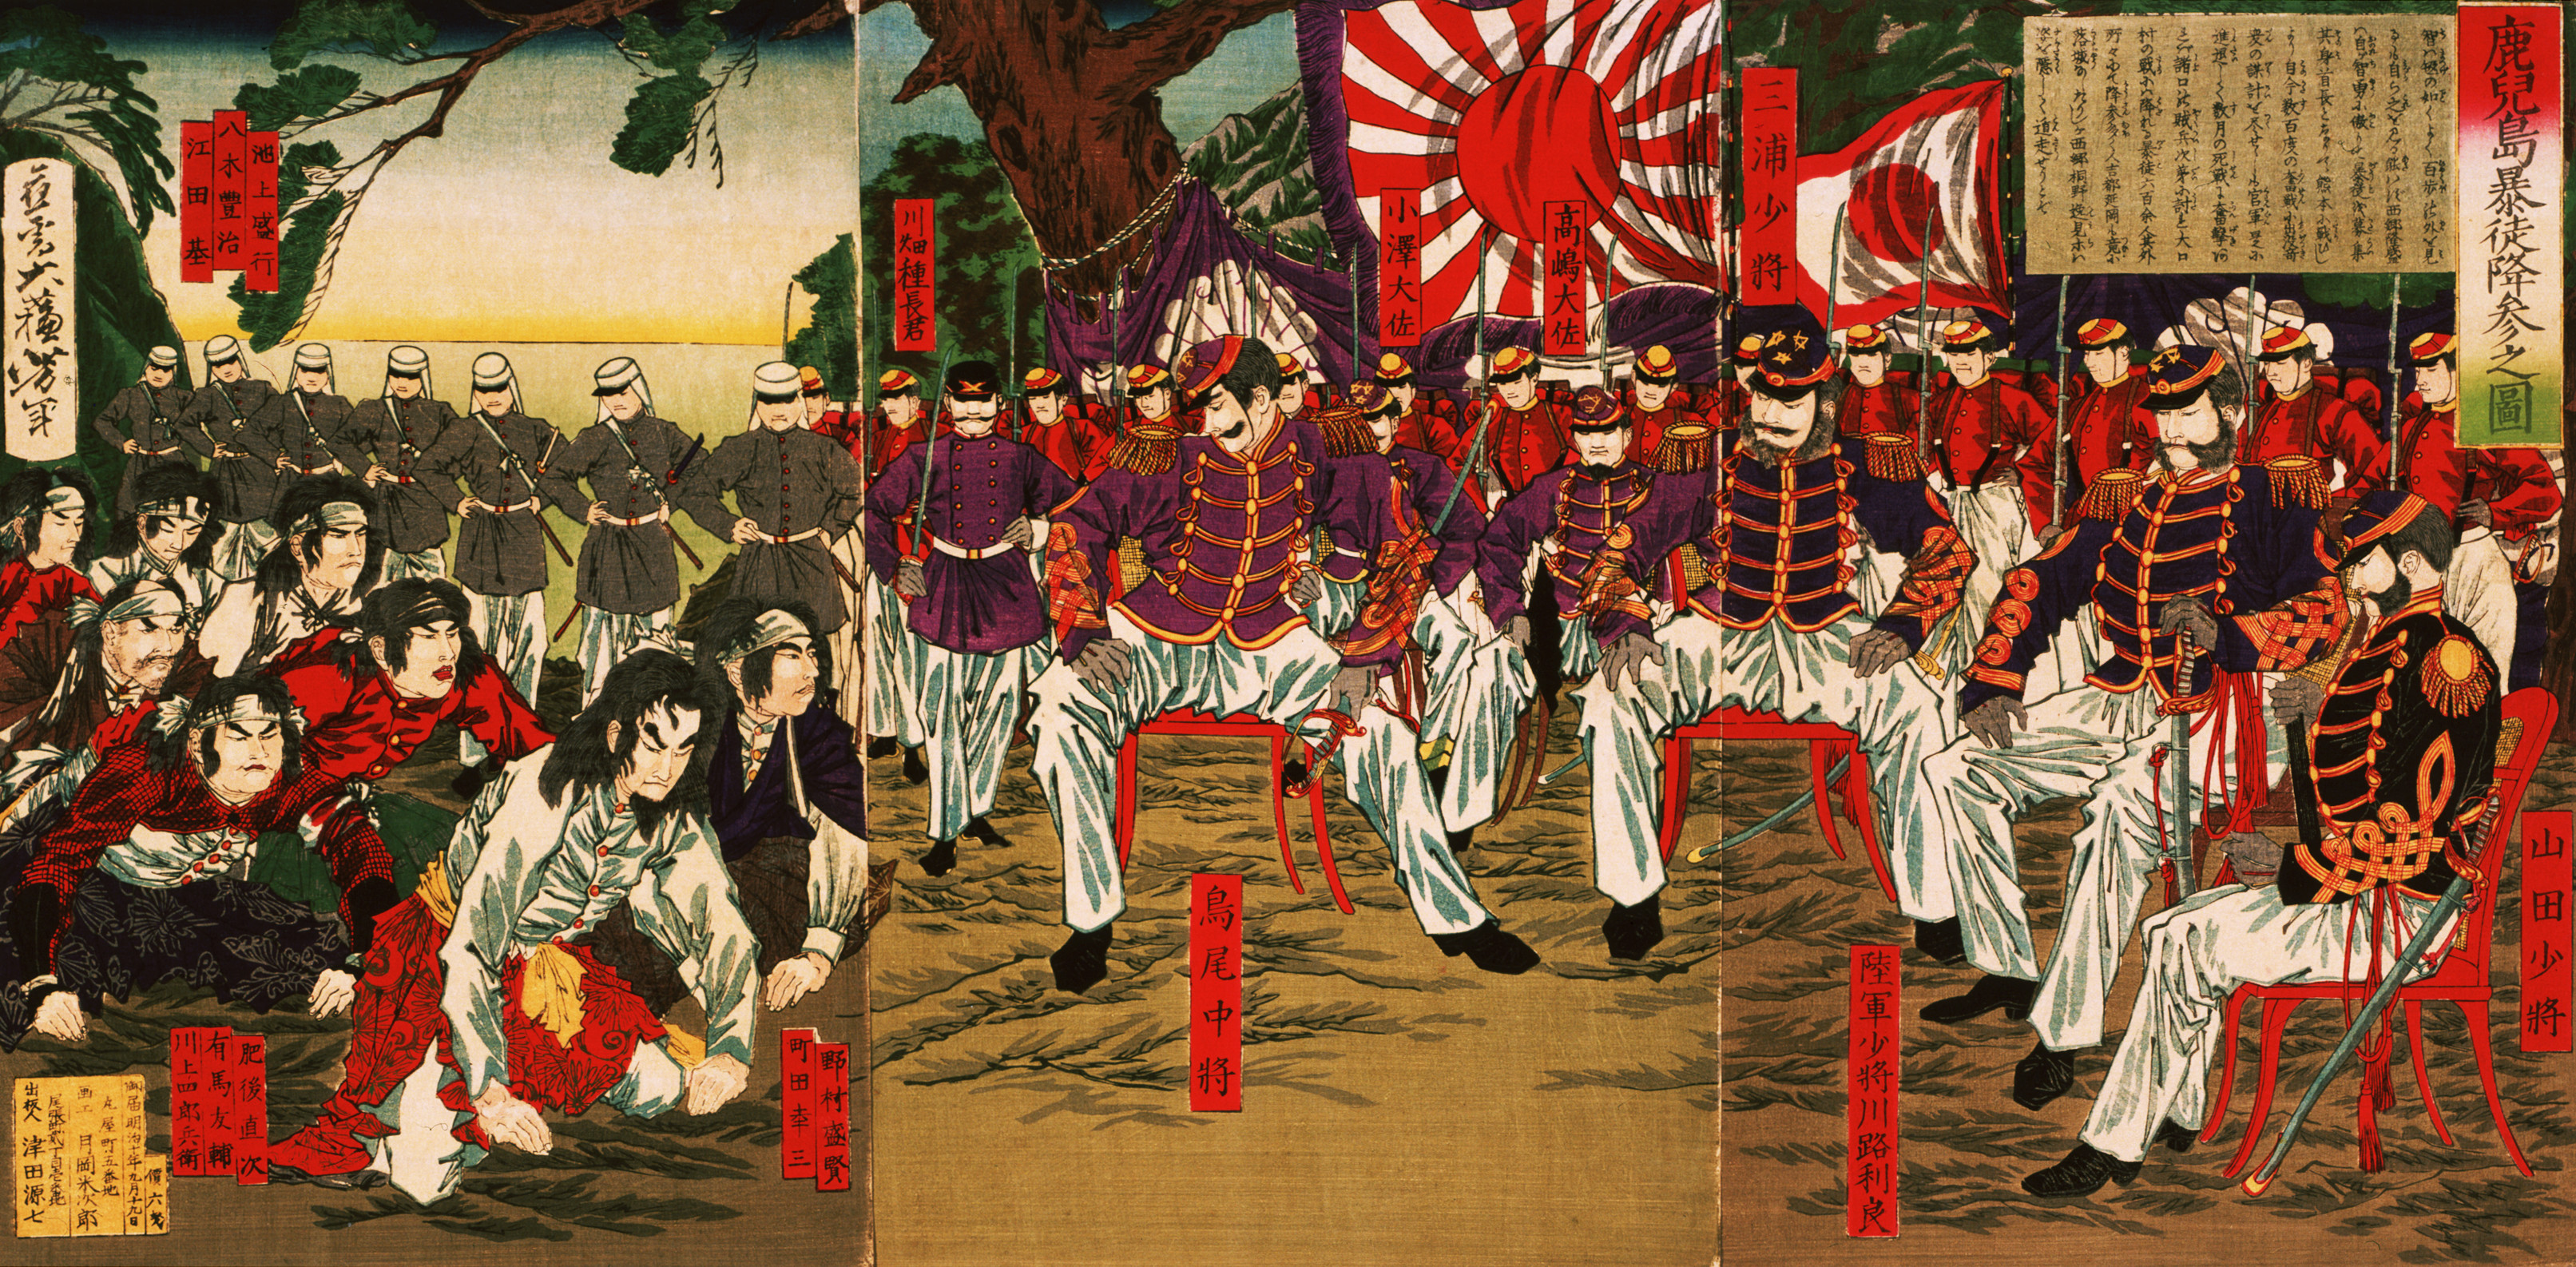 a history of the tokugawa period of japan The edo period and the tokugawa shoguns, how they shaped japan including the tenpo reforms | shogunate japan.